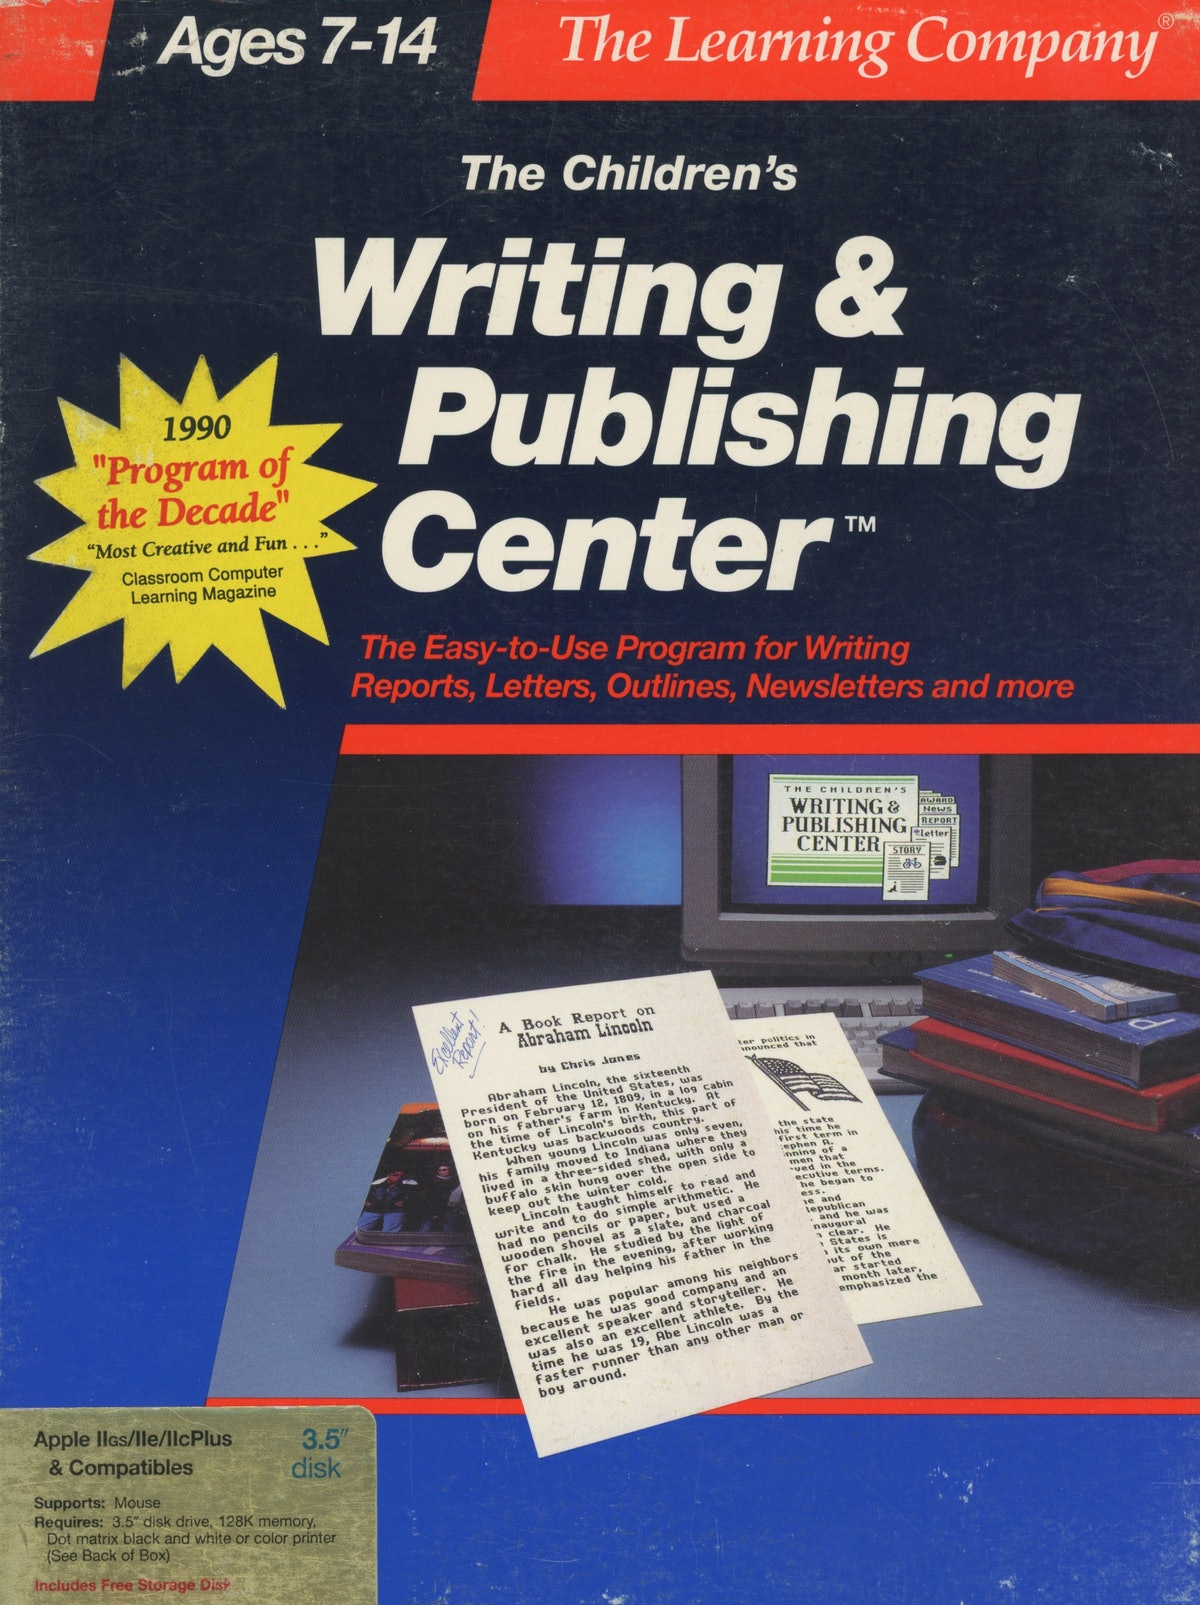 The Children's Writing and Publishing Center